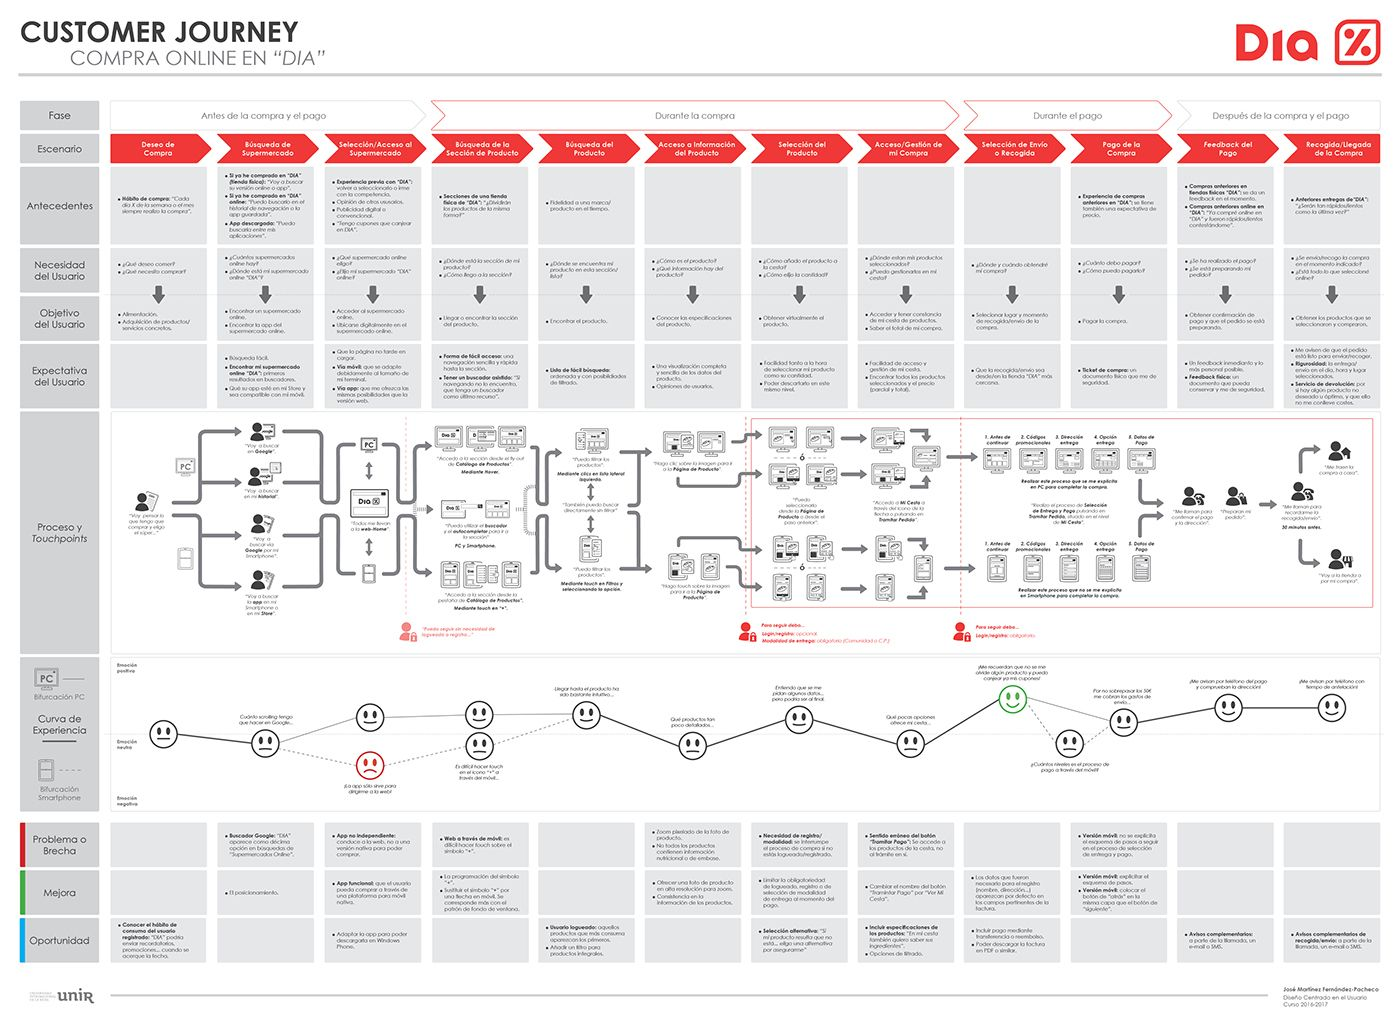 Customer Journey Map Of The Dia Online Store On Behance